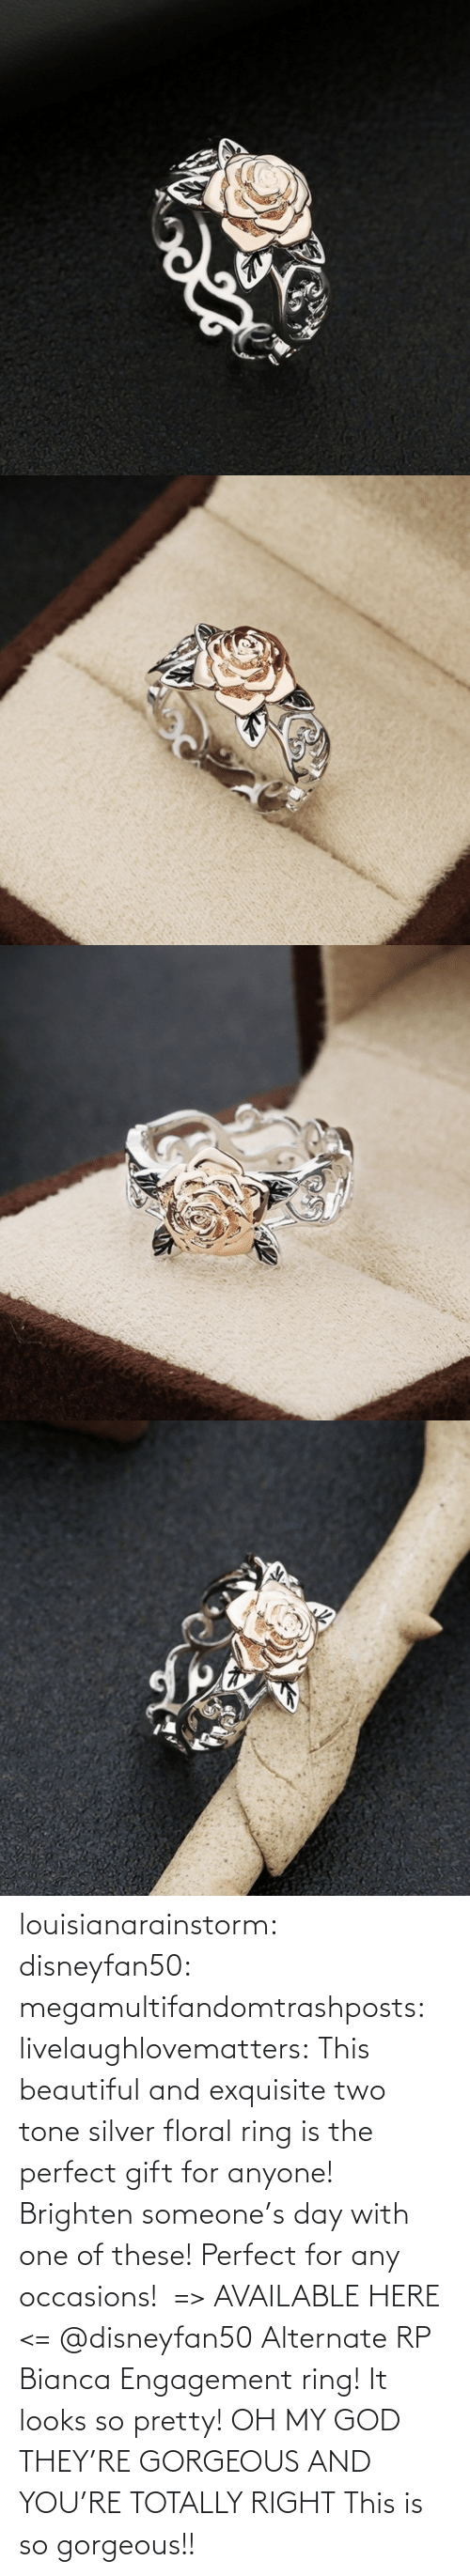 Beautiful, Gif, and God: louisianarainstorm: disneyfan50:  megamultifandomtrashposts:  livelaughlovematters:  This beautiful and exquisite two tone silver floral ring is the perfect gift for anyone! Brighten someone's day with one of these! Perfect for any occasions! => AVAILABLE HERE <=    @disneyfan50 Alternate RP Bianca Engagement ring! It looks so pretty!  OH MY GOD THEY'RE GORGEOUS AND YOU'RE TOTALLY RIGHT    This is so gorgeous!!